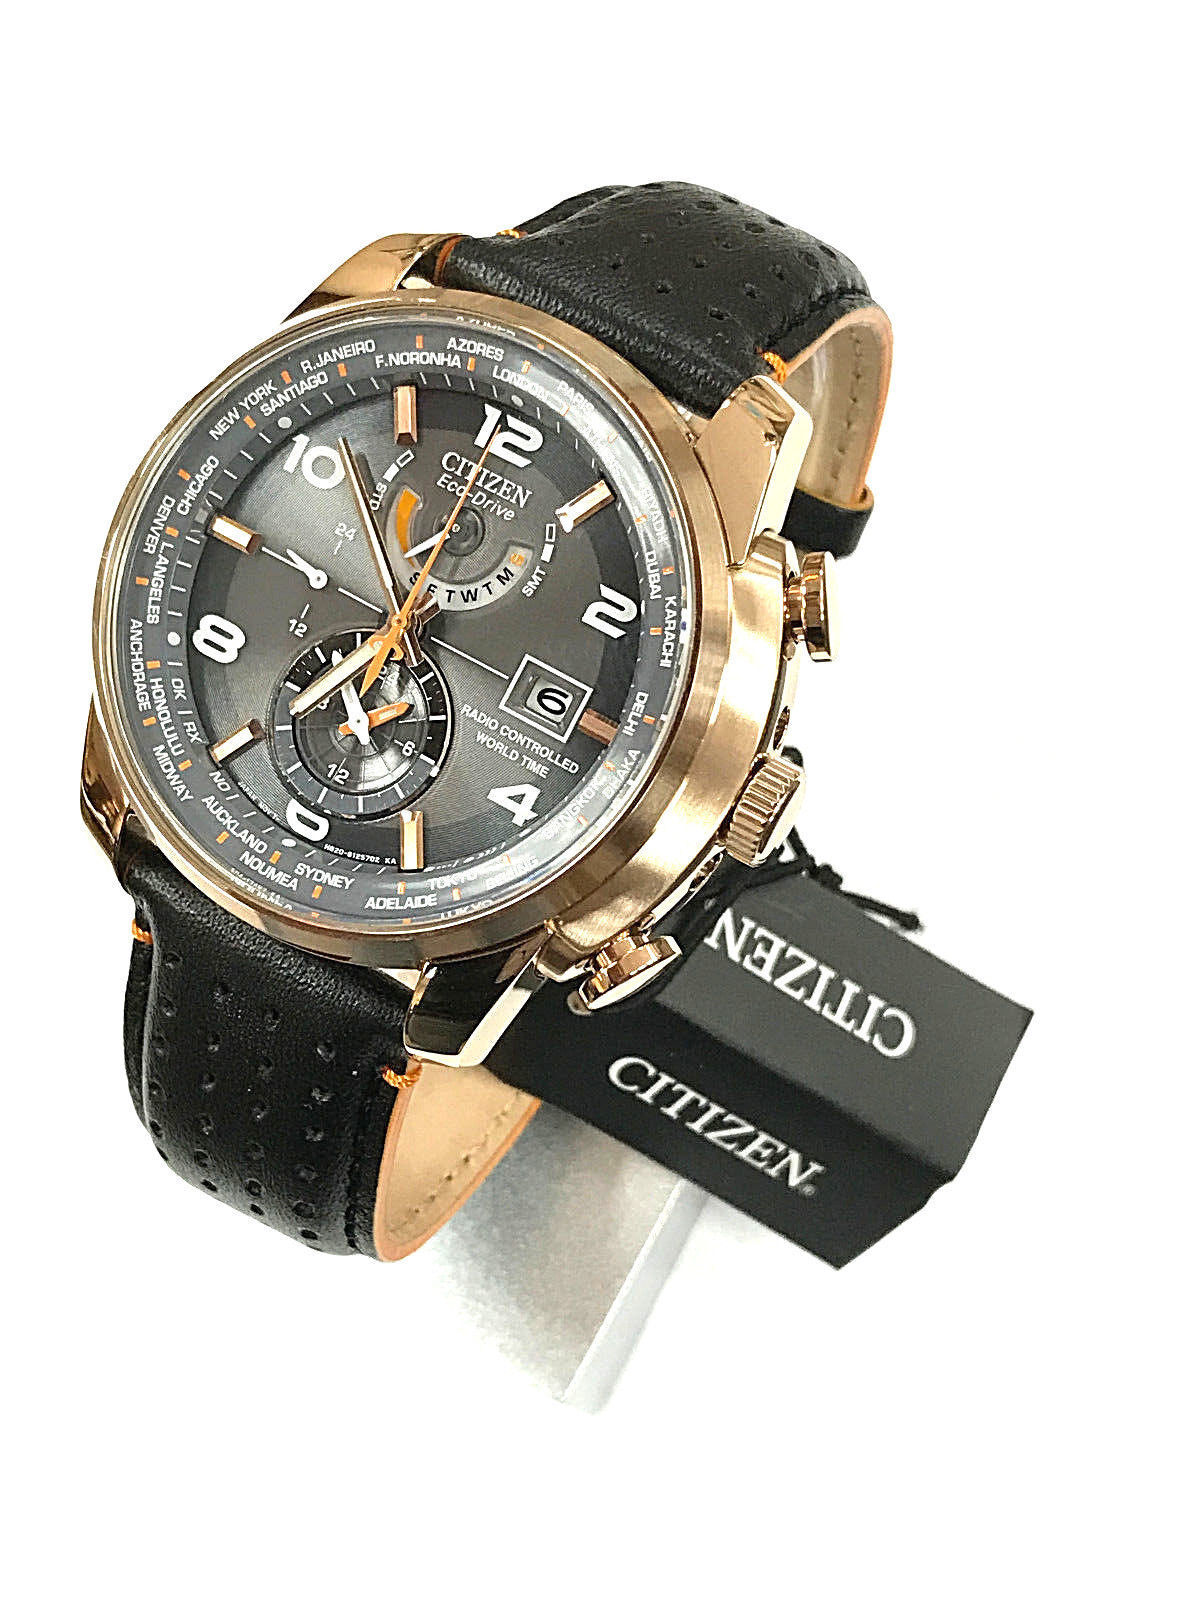 $214.99 - Citizen World Time Rose Gold Men's Watch AT9013-03H ***NEW***